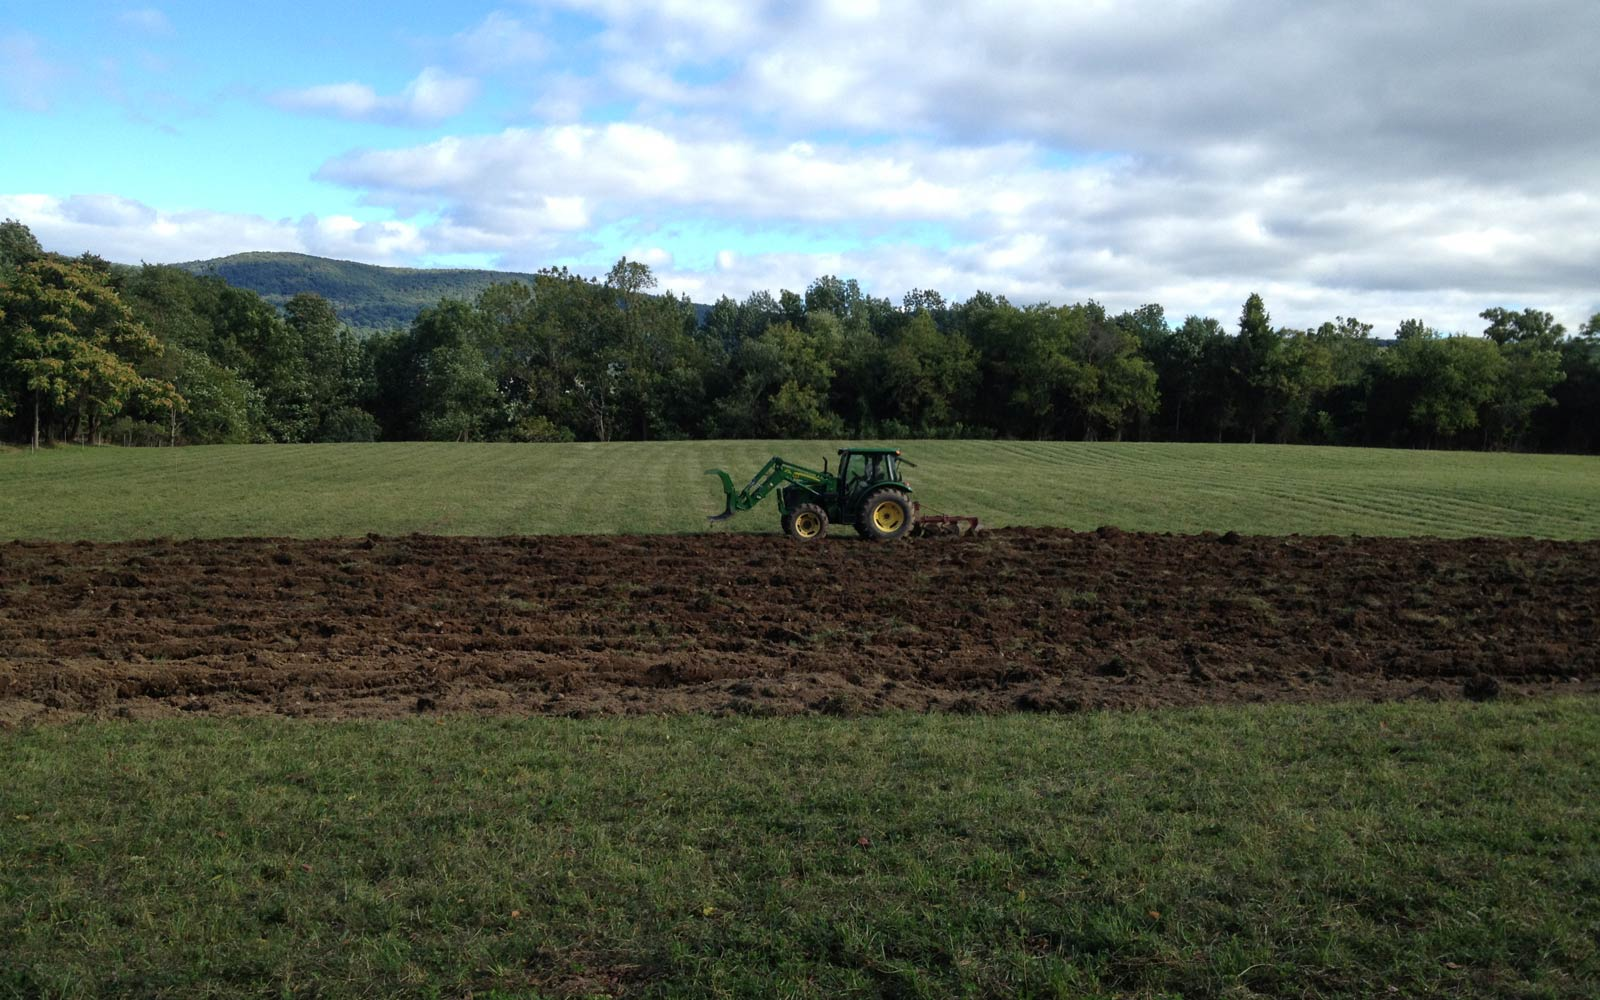 vernon valley farm - tractor in field